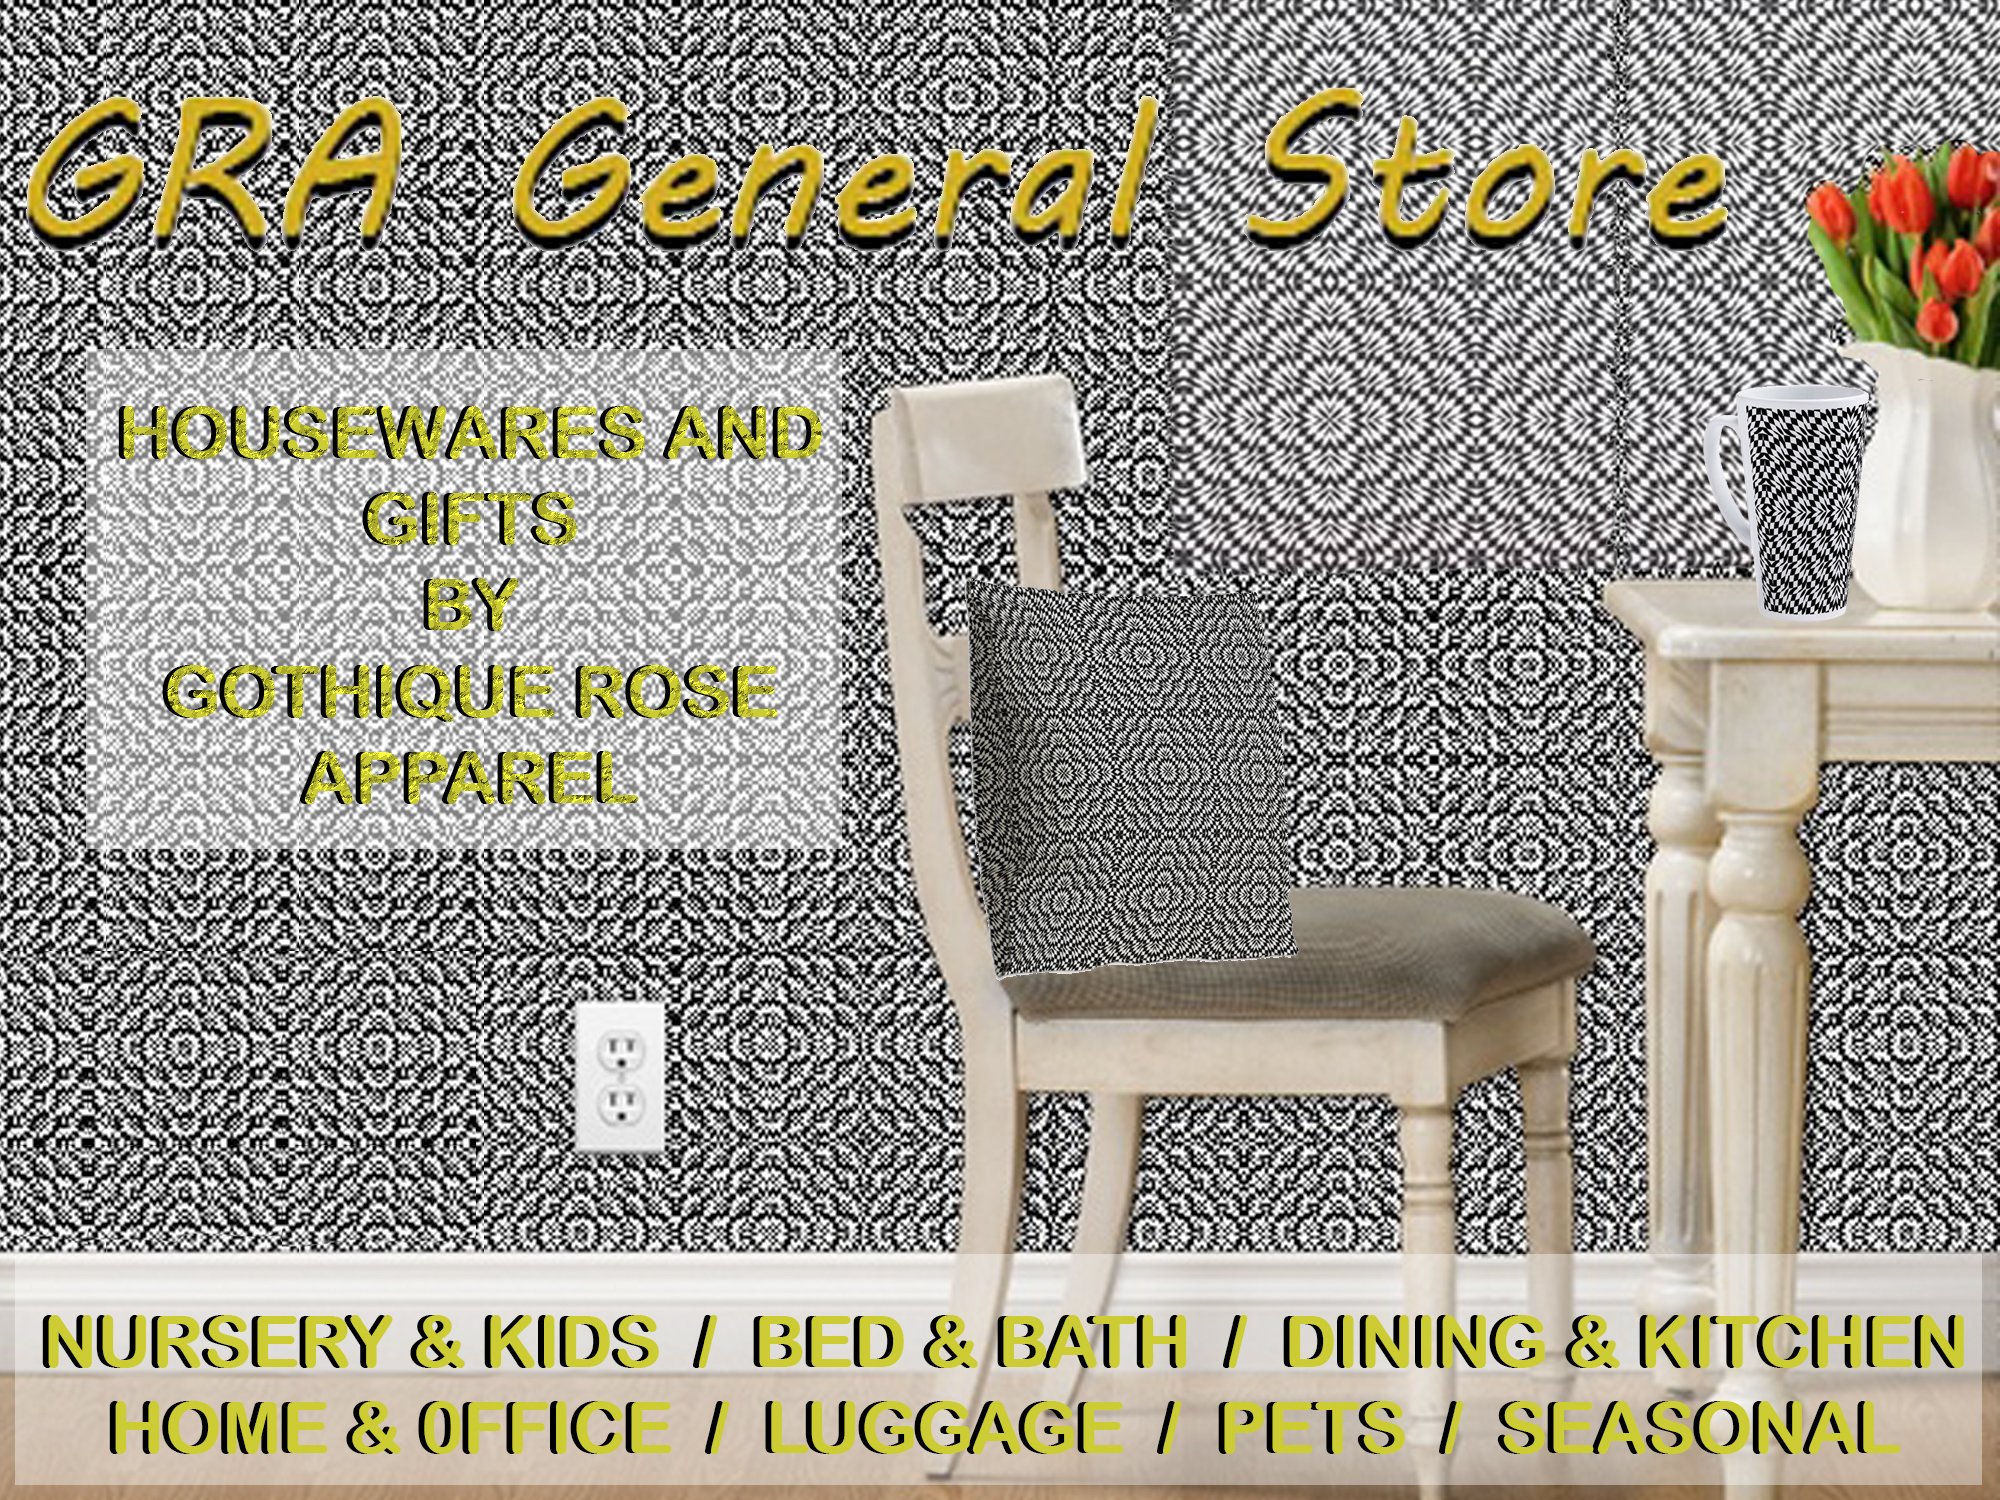 GRA General Store... Housewares and Gifts by Gothique Rose Apparel